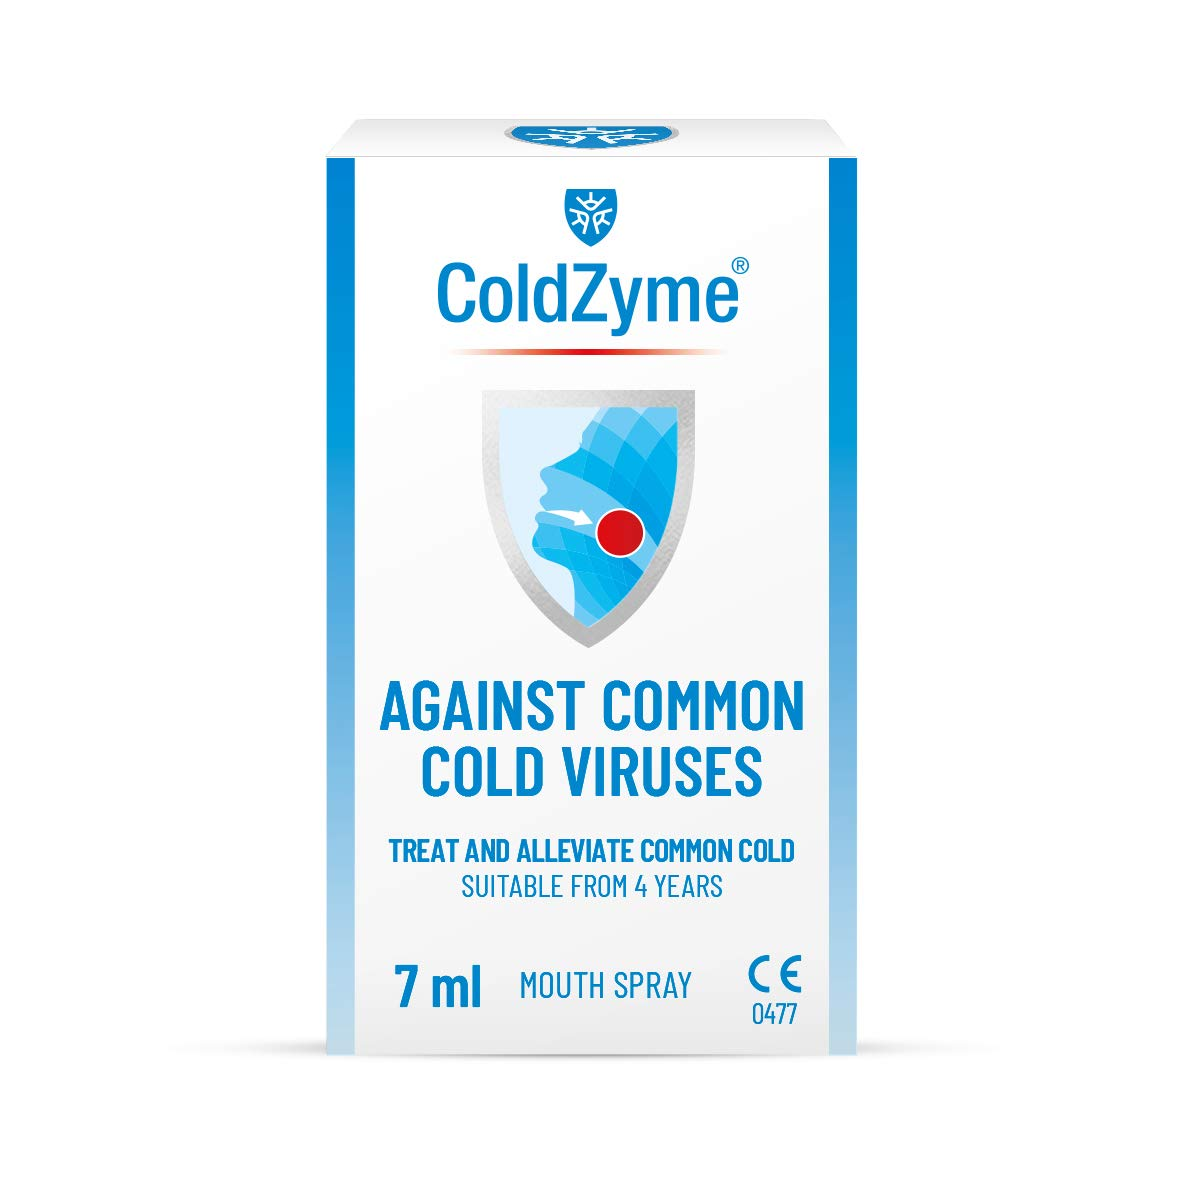 ColdZyme Mouth & Throat Spray (Not Nasal Spray) | Cold Virus Treatment, Alleviation and Protection | 7ml Pack - Menthol Flavour